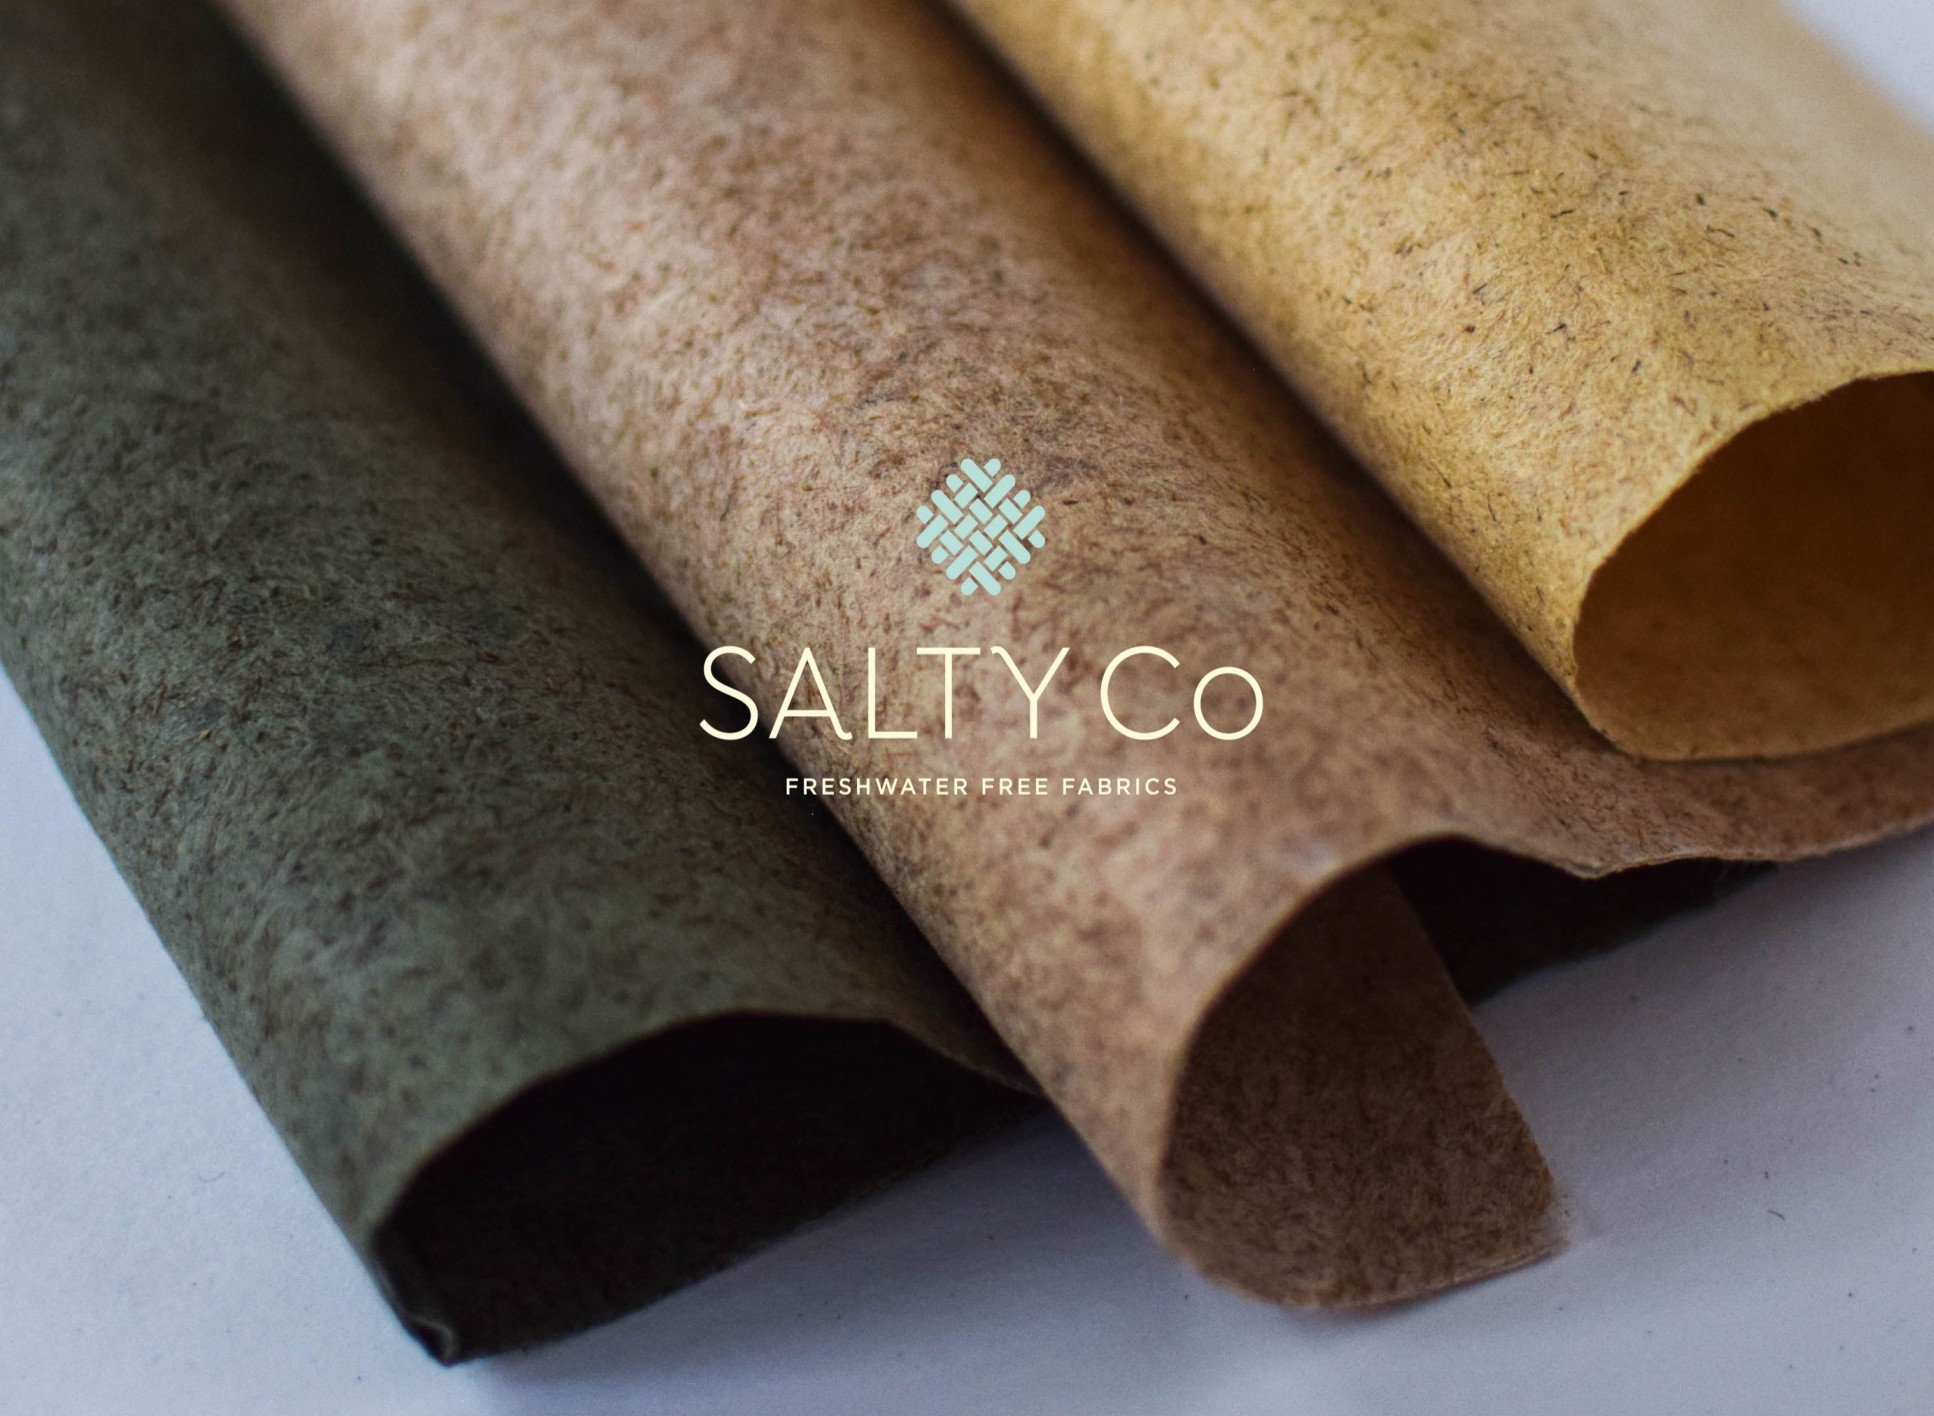 Image of materials created by Salty Co